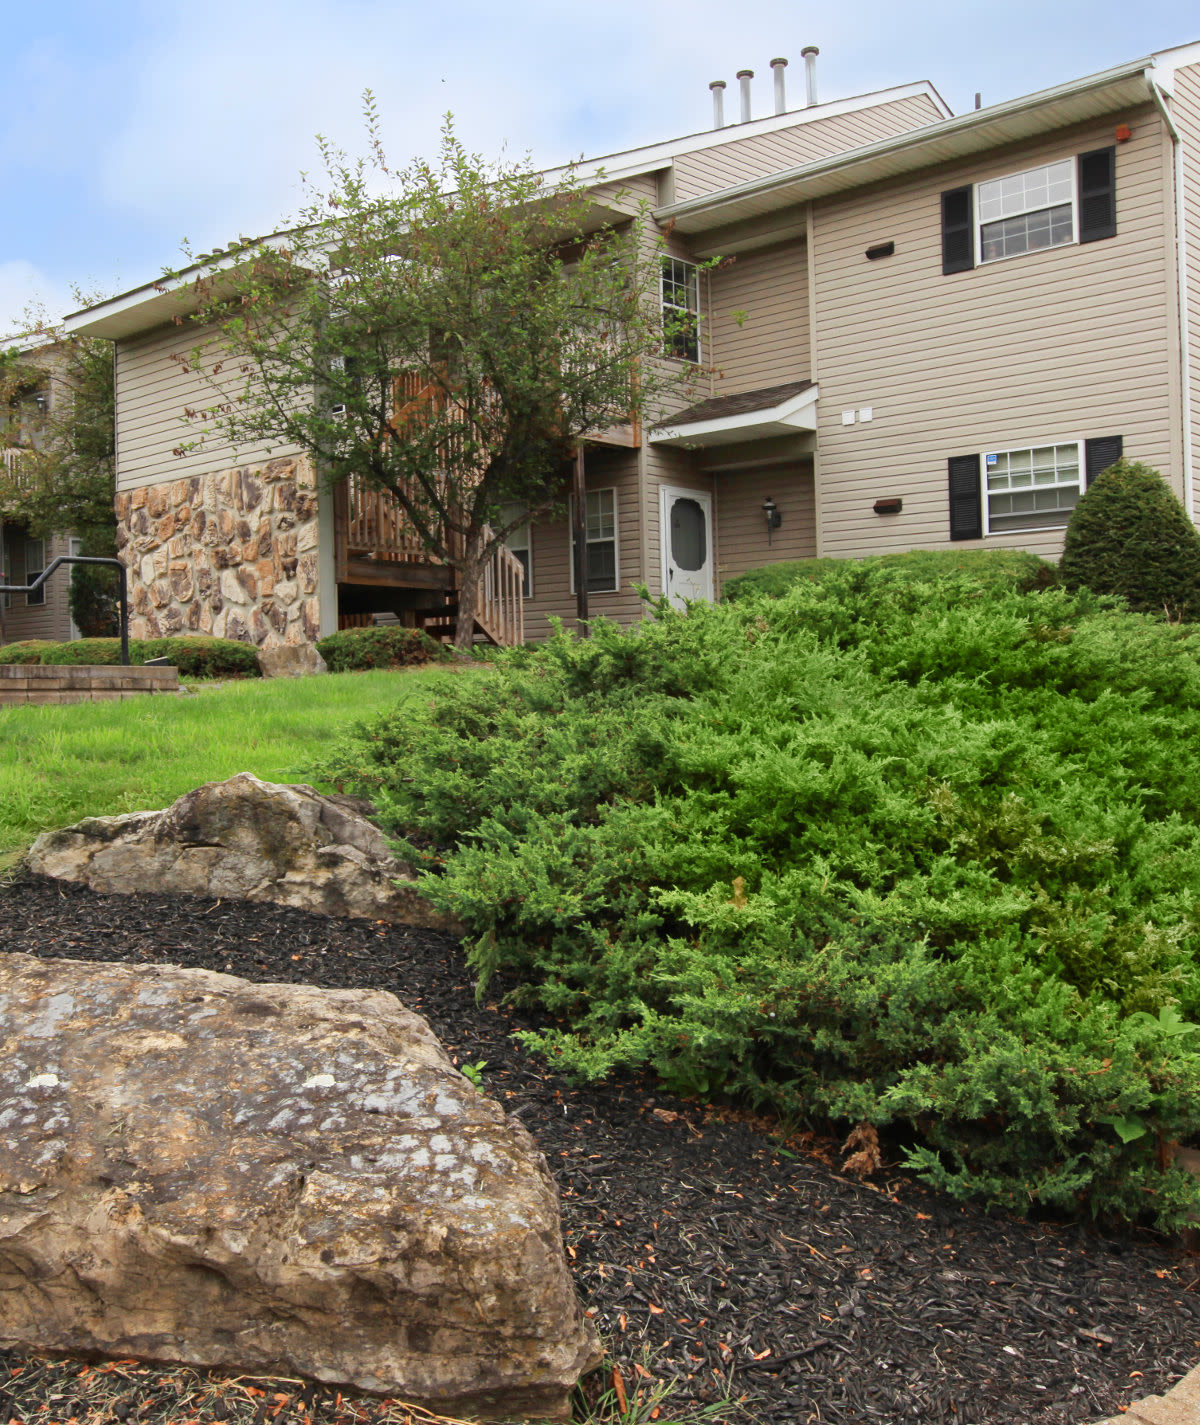 Pleasant Valley Apartments: Apartments For Rent In Dutchess County, NY